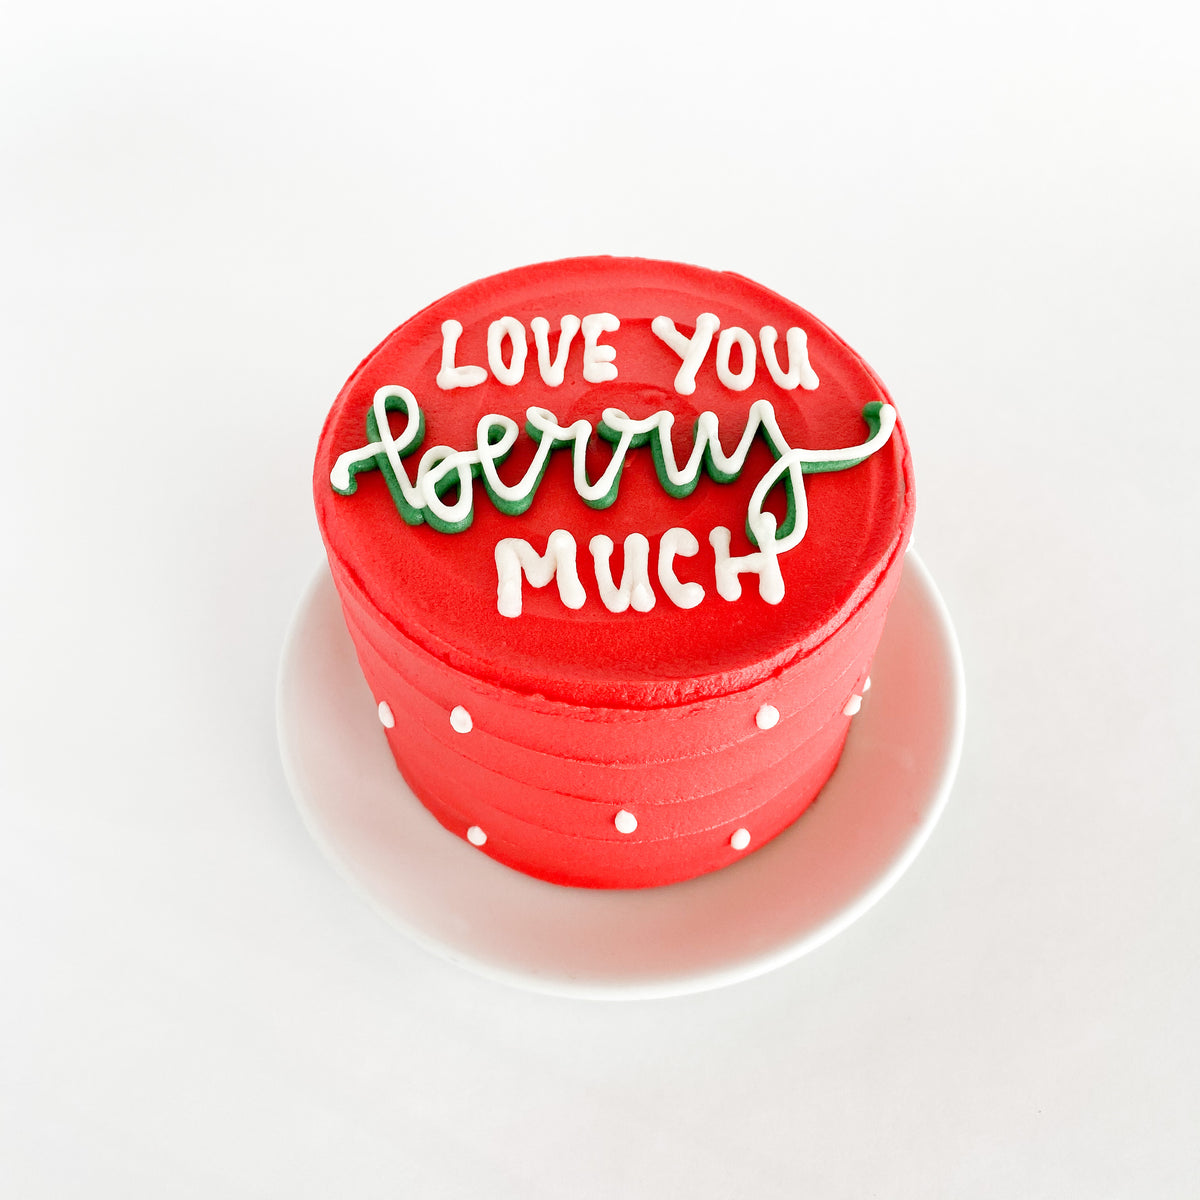 Love You Berry Much Cake